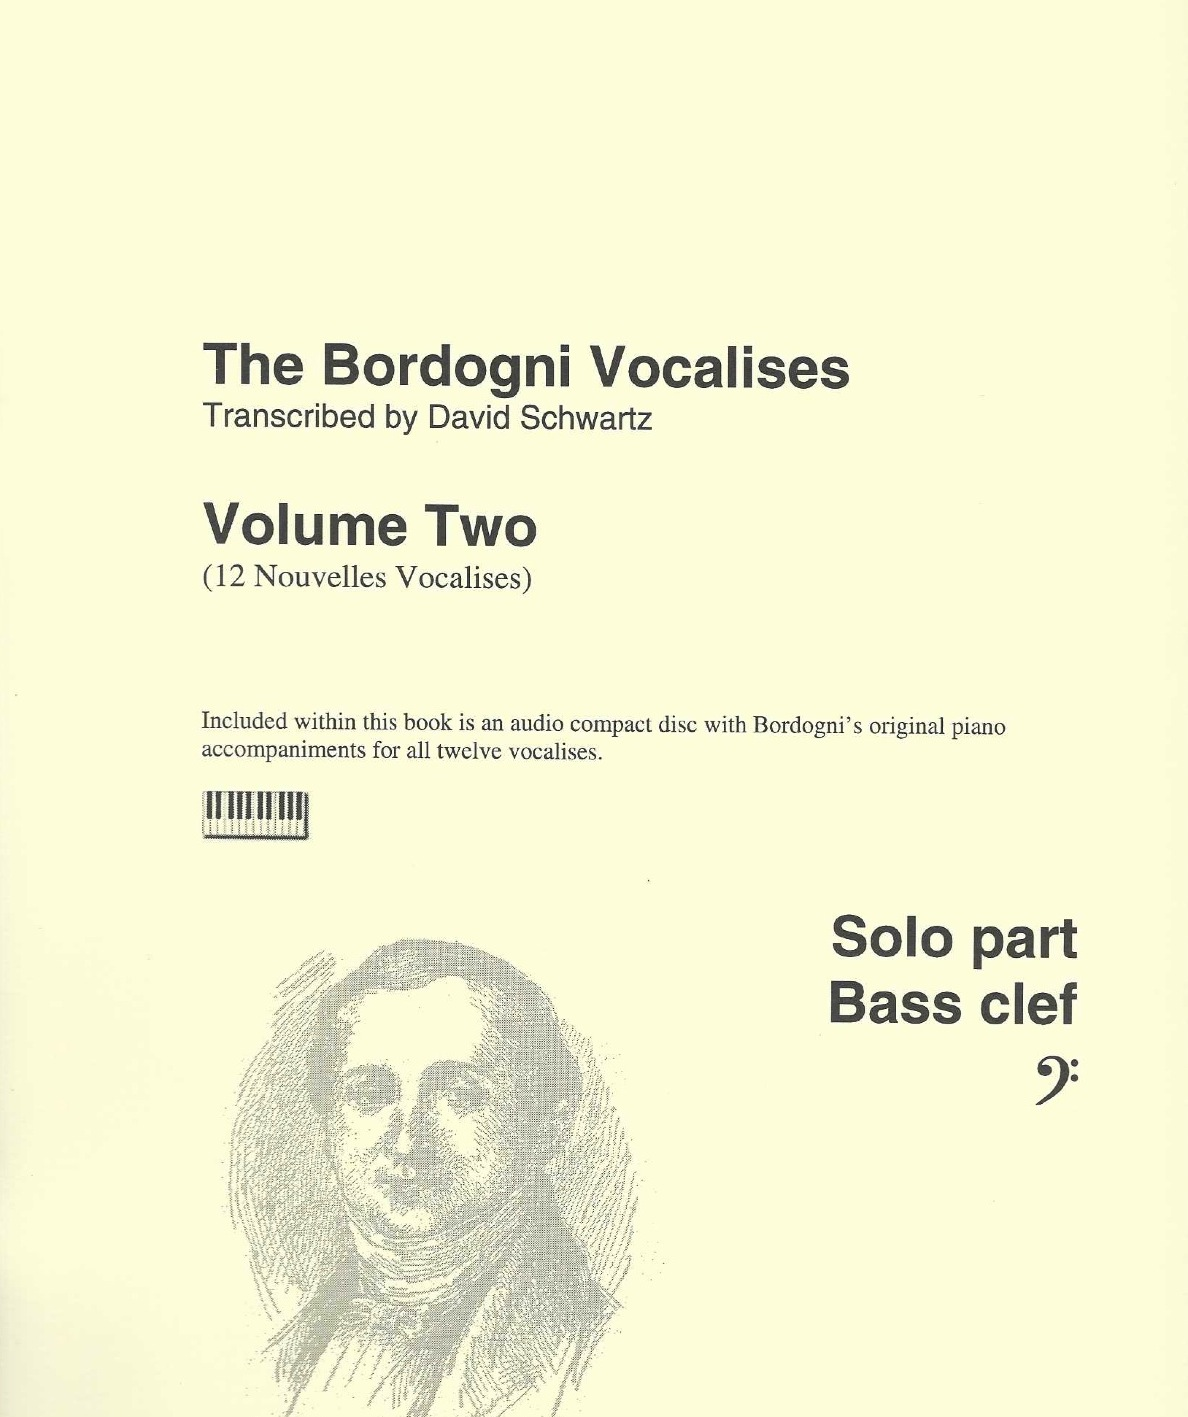 Bordogni Vocalises (Rochut) in bass clef - Vol.2 (12 pieces) - with piano acc. on CD